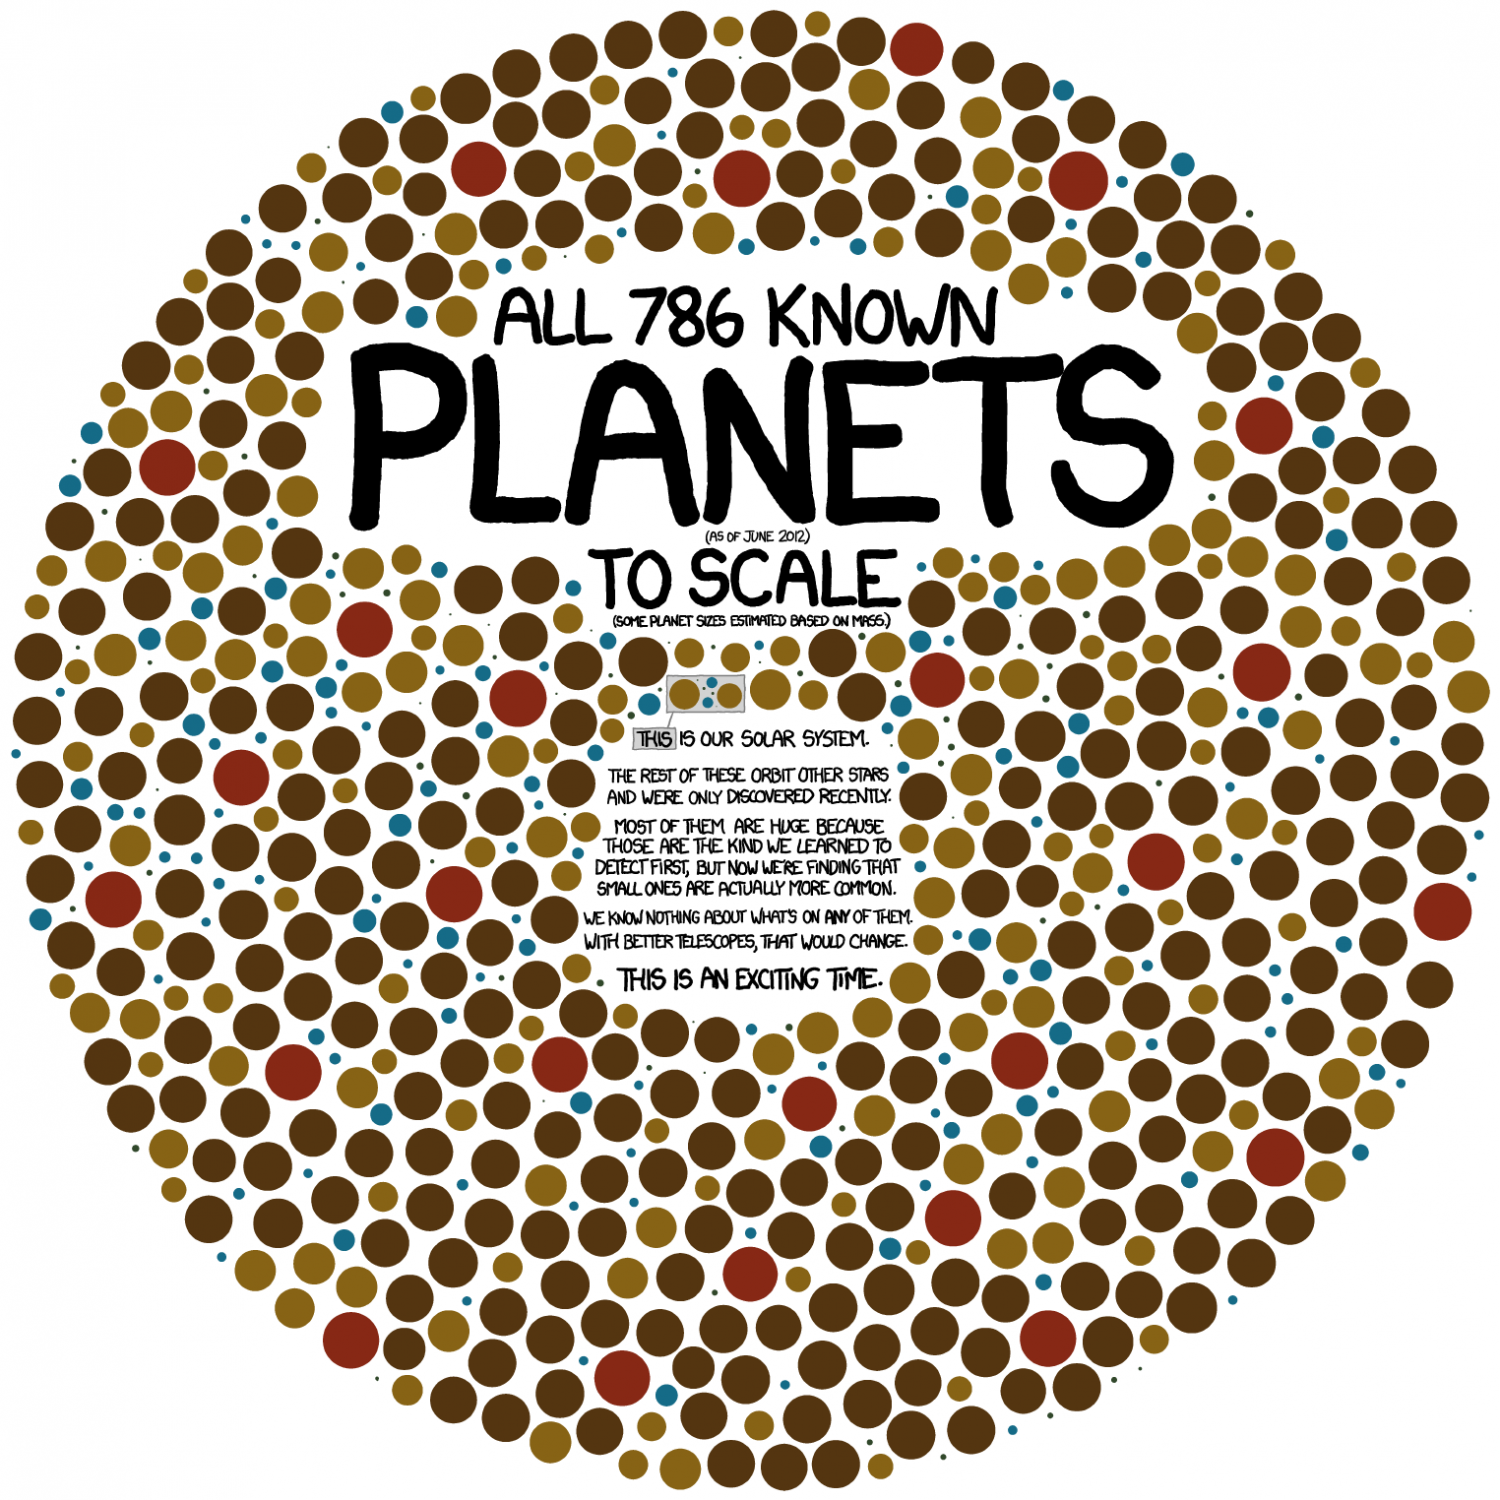 All 786 Known Planets Infographic